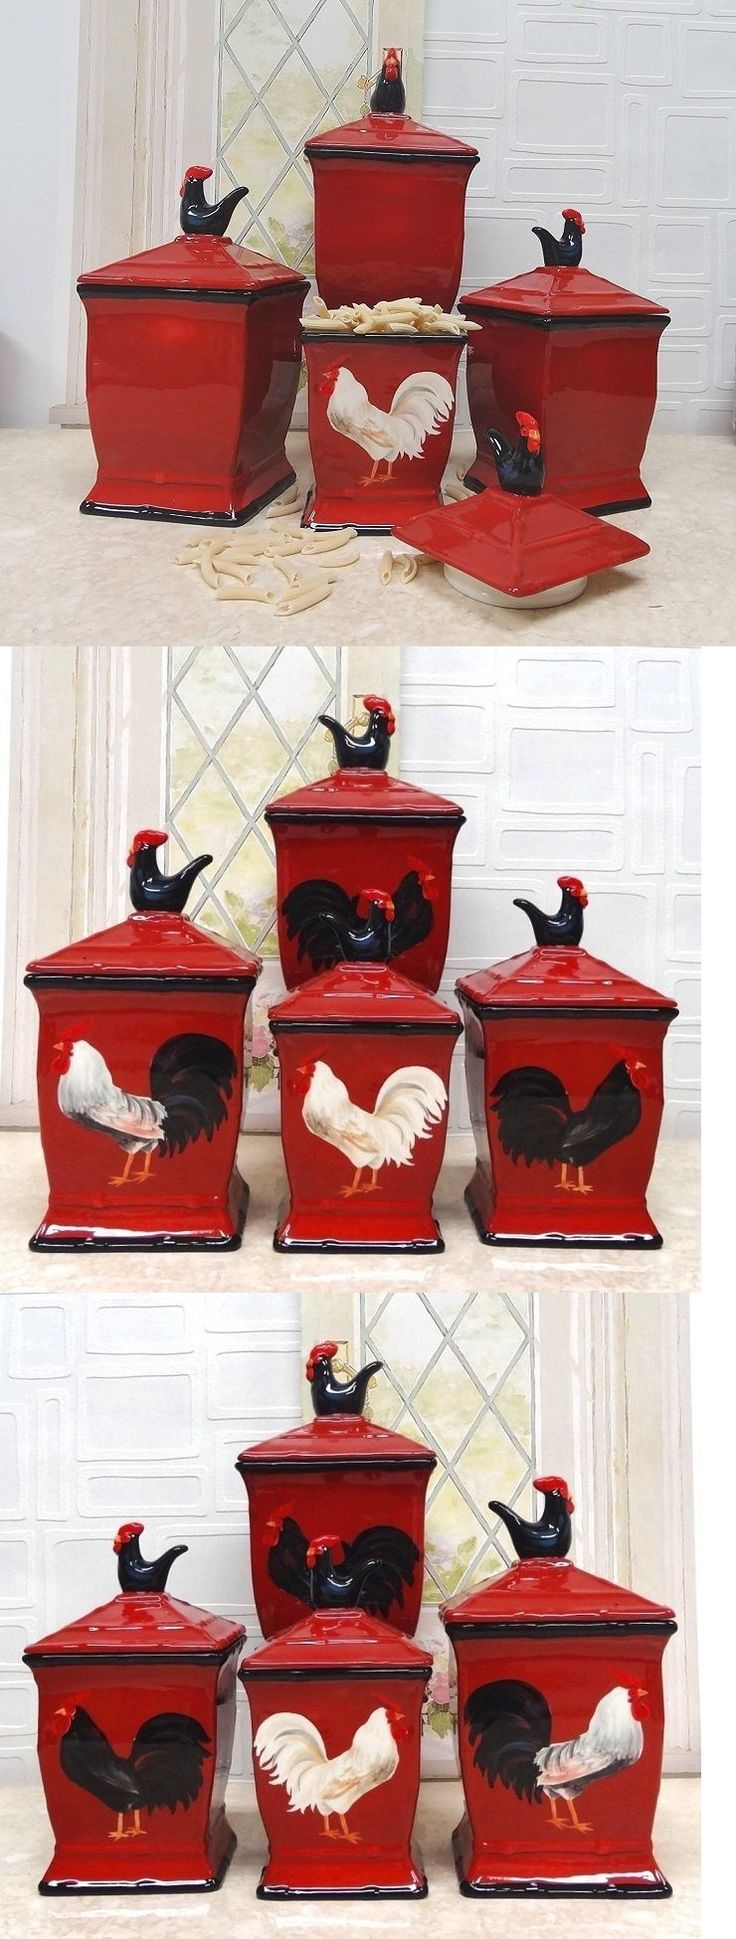 Tuscan old world drake design medium berry kitchen canisters set of 3 - Canisters And Jars 20654 Canister Set Sets Kitchen Sugar Flour Coffee Red Rooster Cookie Jar